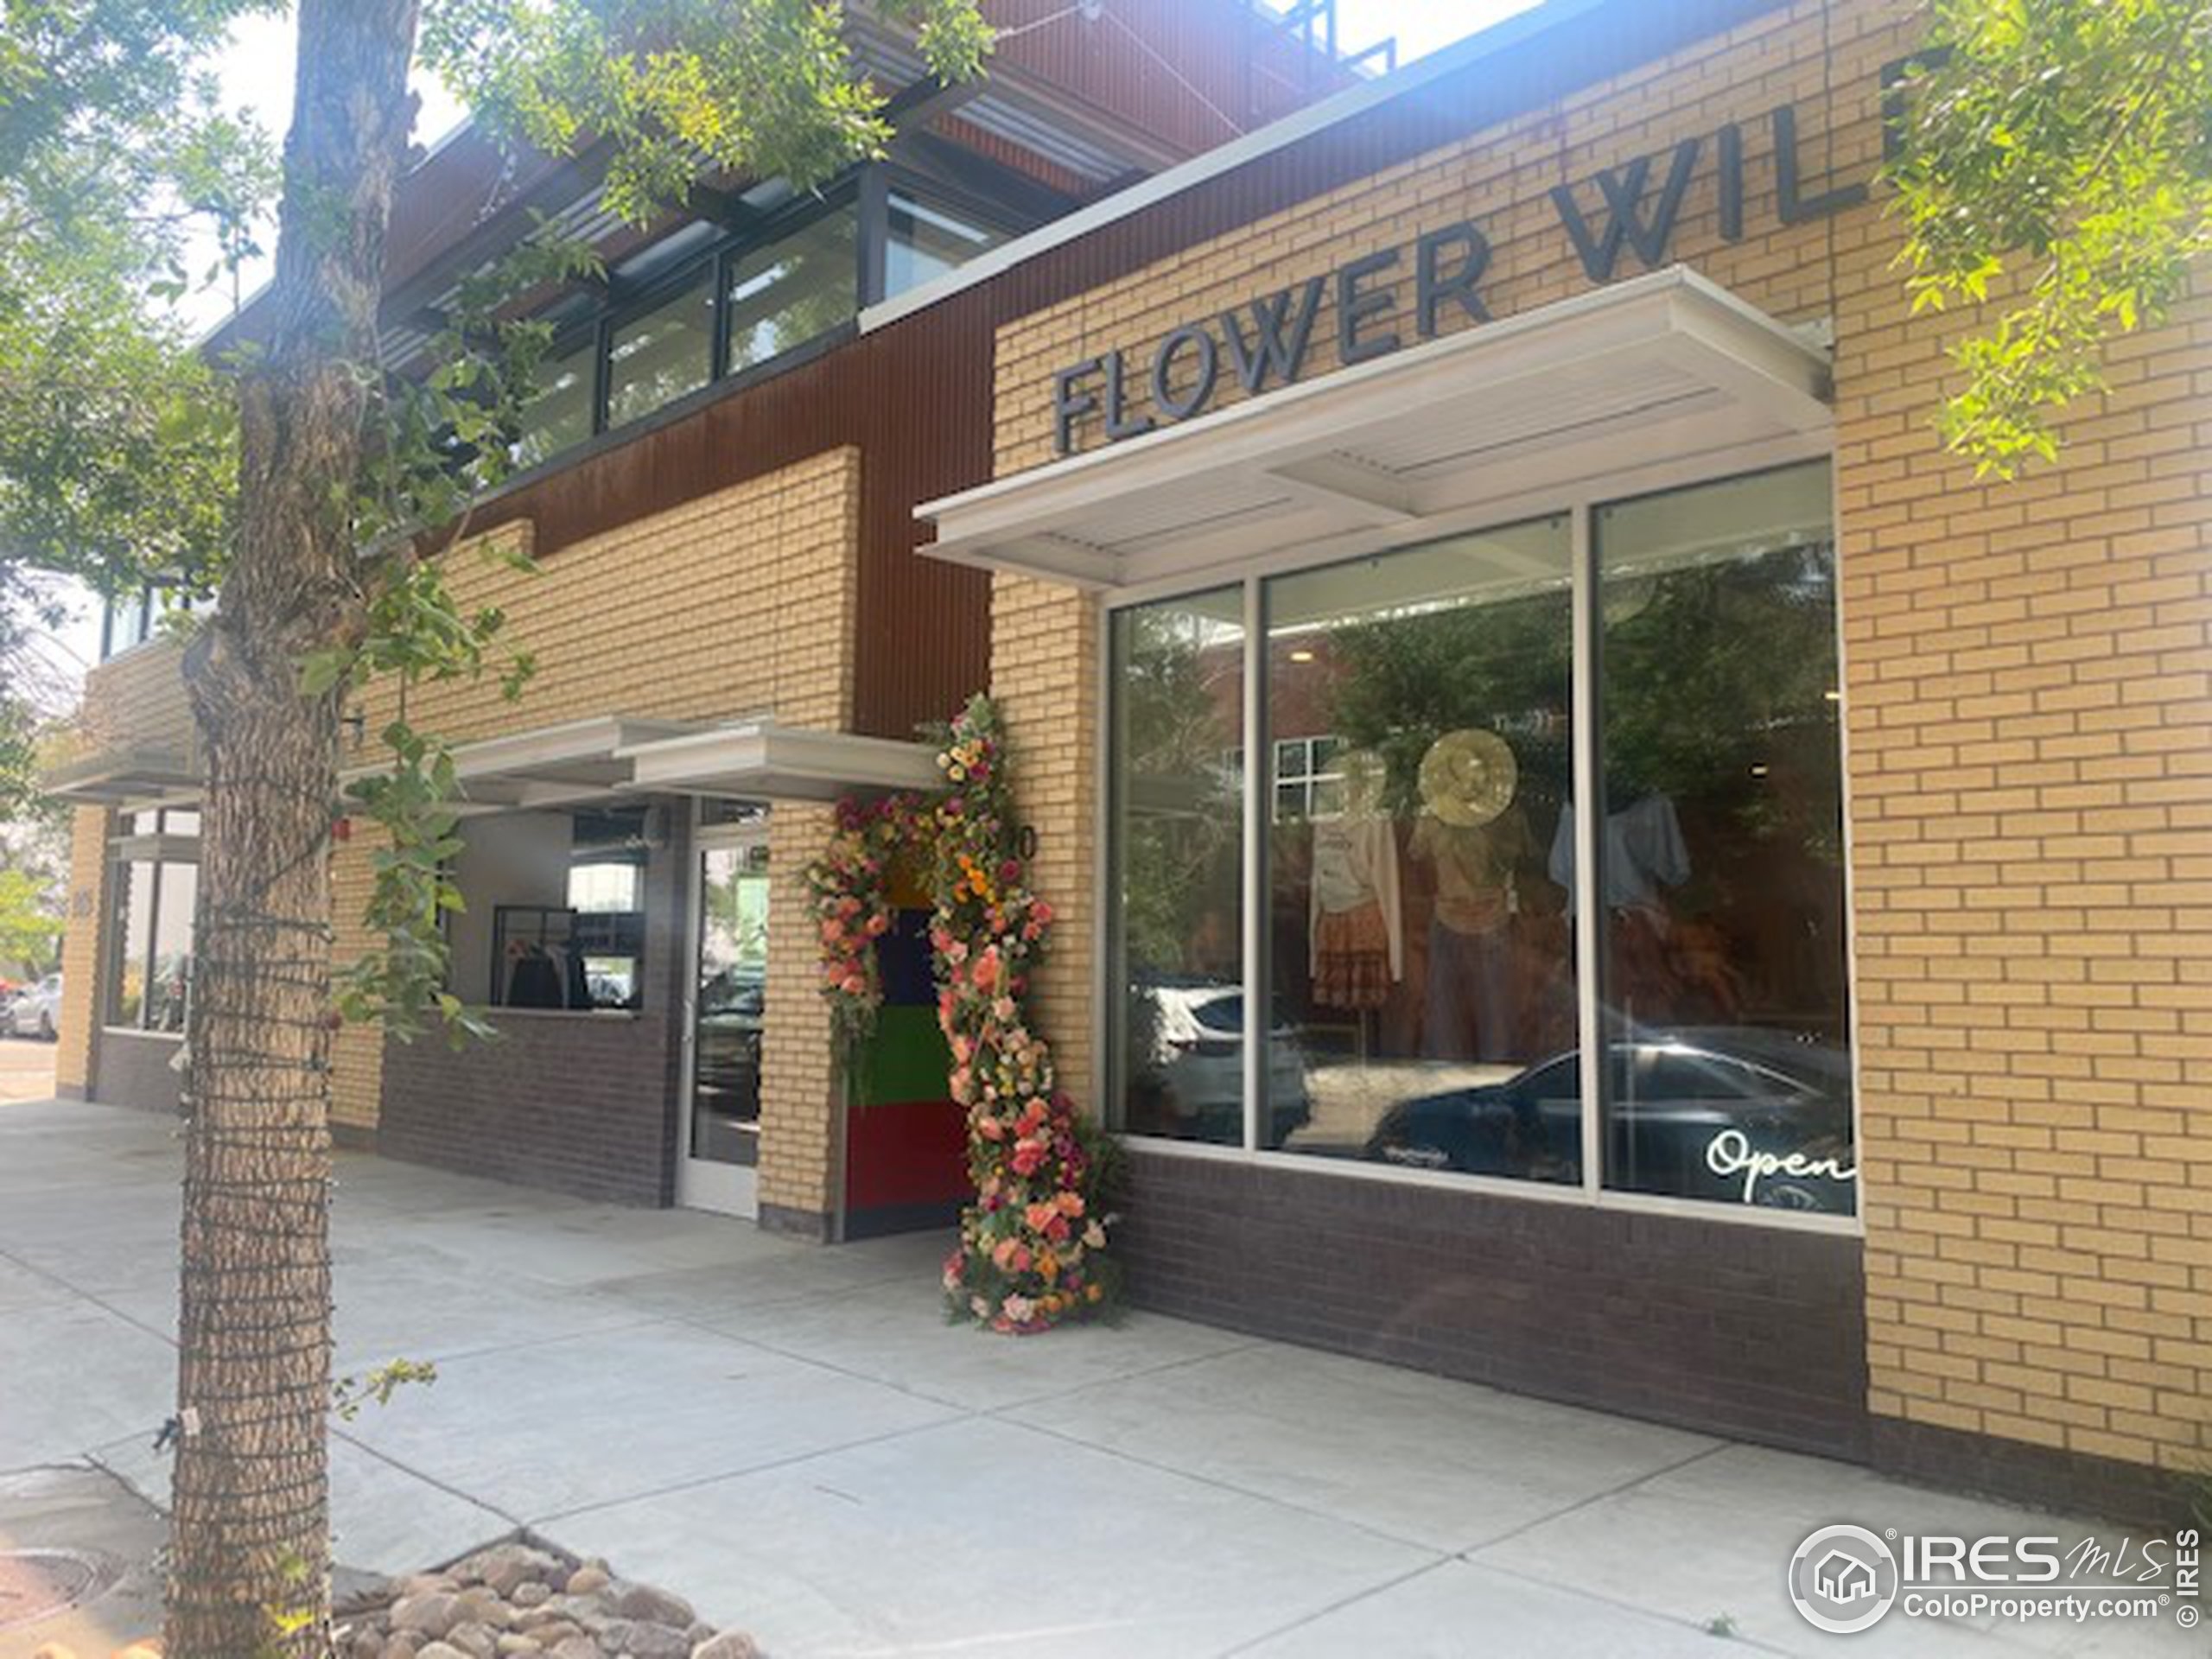 Honeycomb Hair Salon & Flower Wild Boutique are right across the street